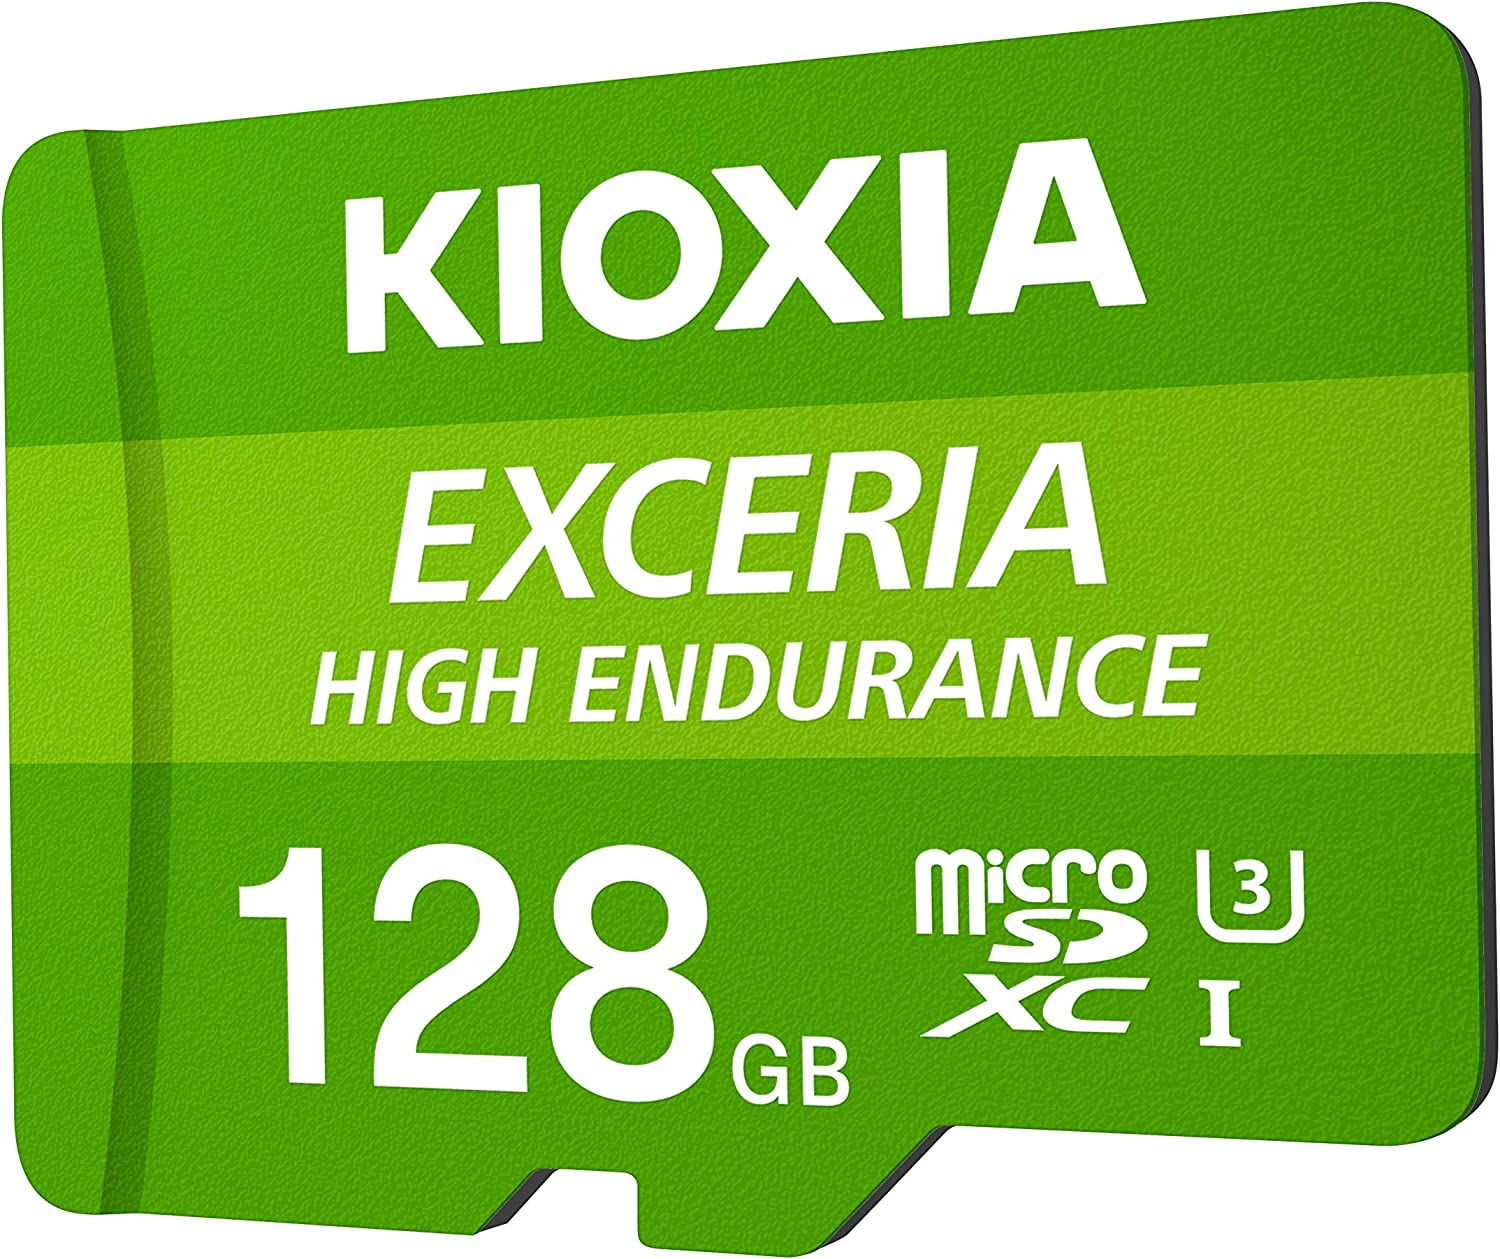 Built for Lifetime of Use! Heat /& Cold Resistant UHS-I,U3,80MBs MIXZA Performance Grade 128GB Verified for Karbonn Titanium Vista FHD MicroSDXC Card is Pro-Speed